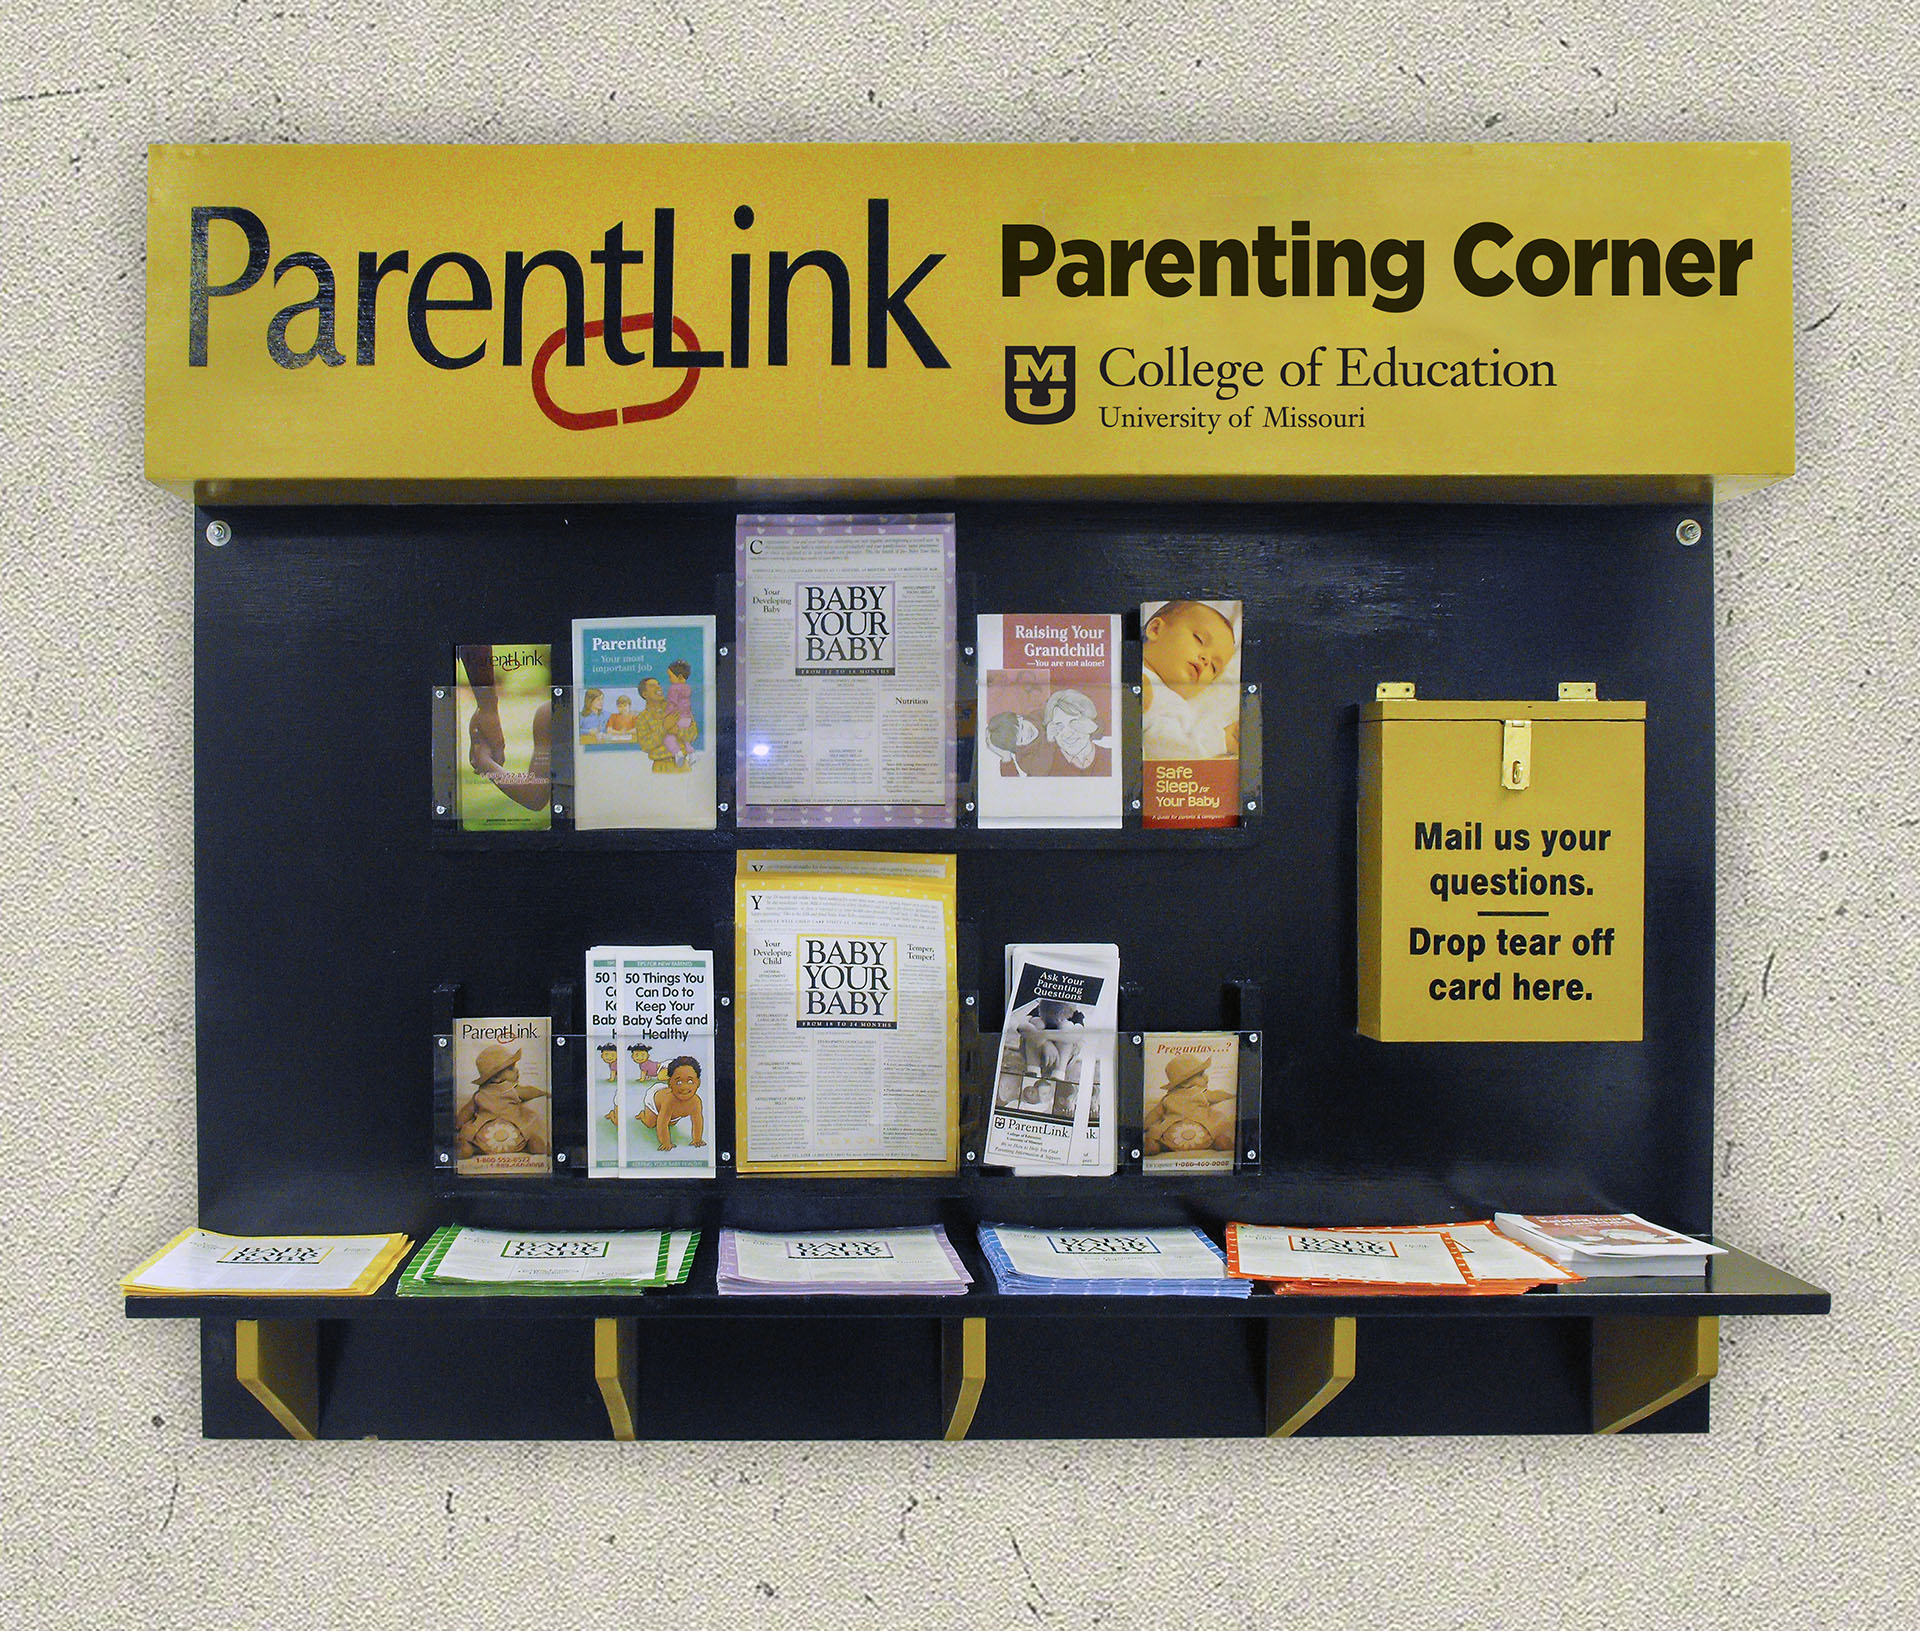 ParentLink Parenting Corners, Services for Incarcerated Parents